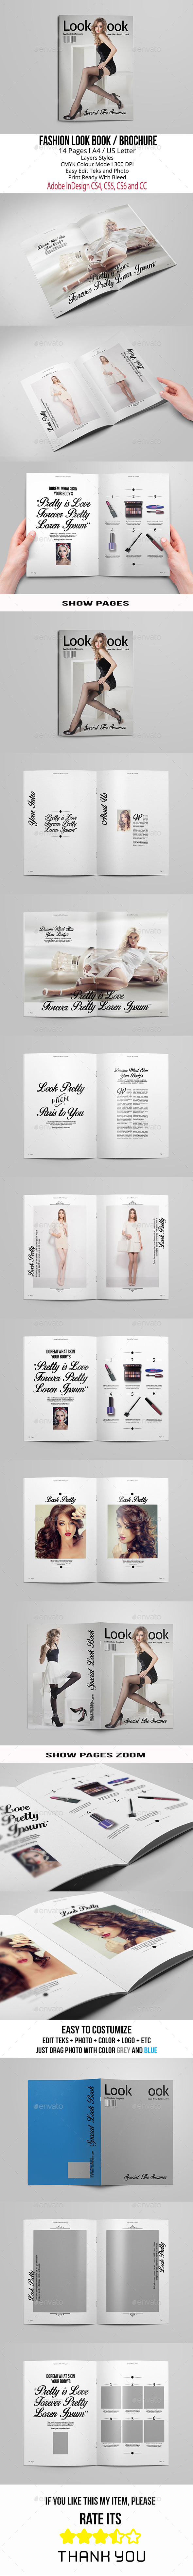 Fashion Look Book A4/US Letter - Brochures Print Templates